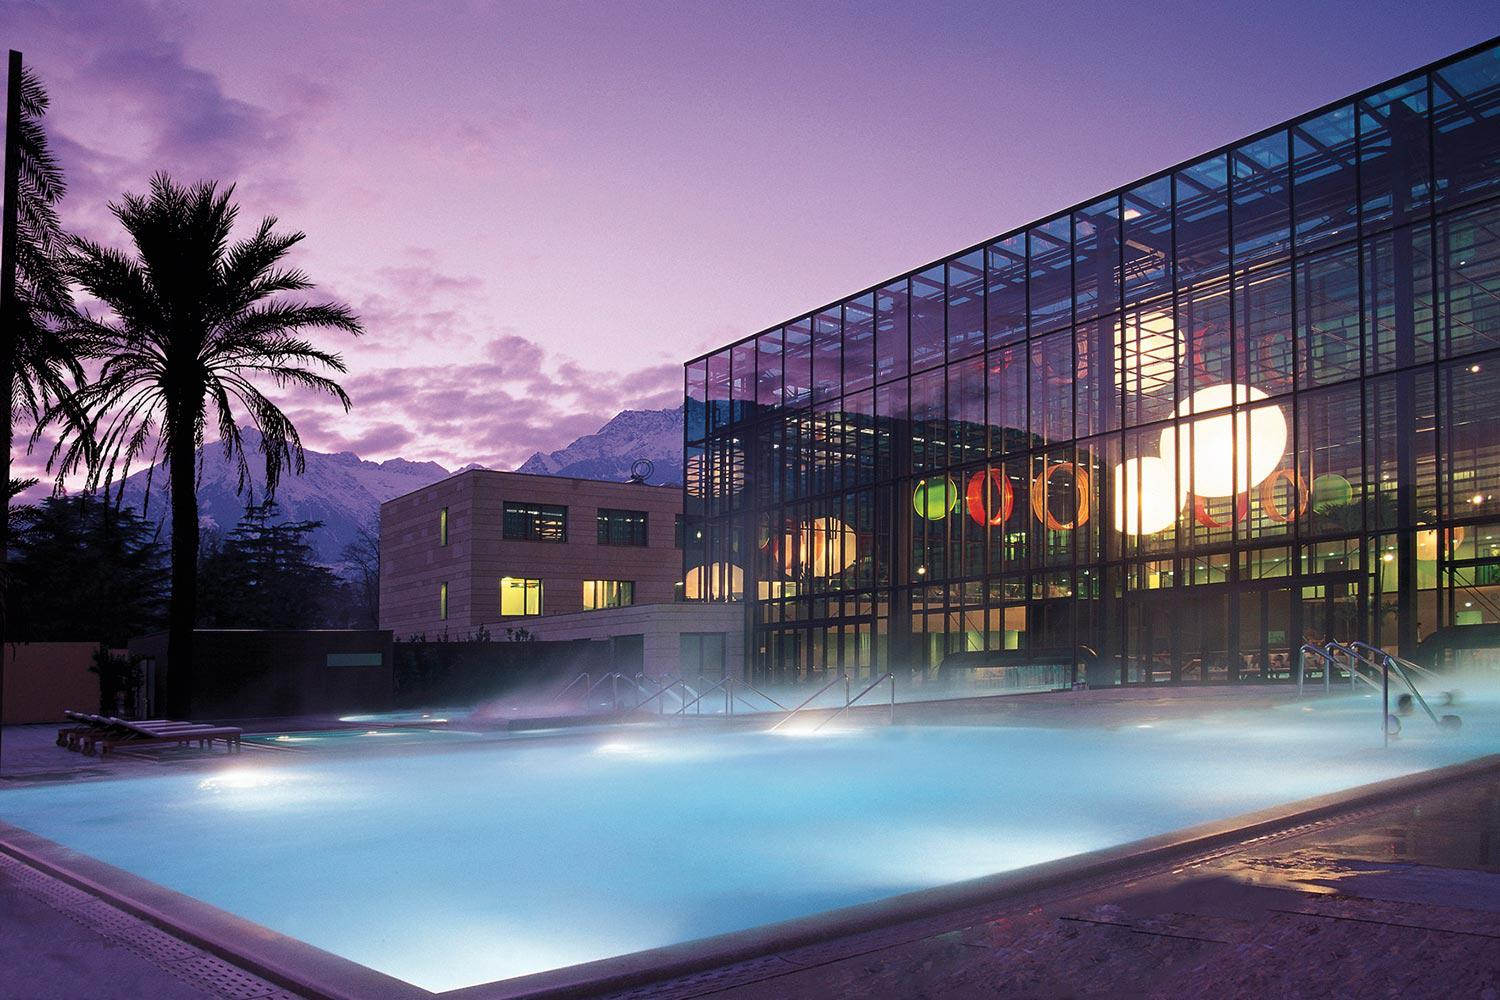 Abendstimmung in der Therme Meran